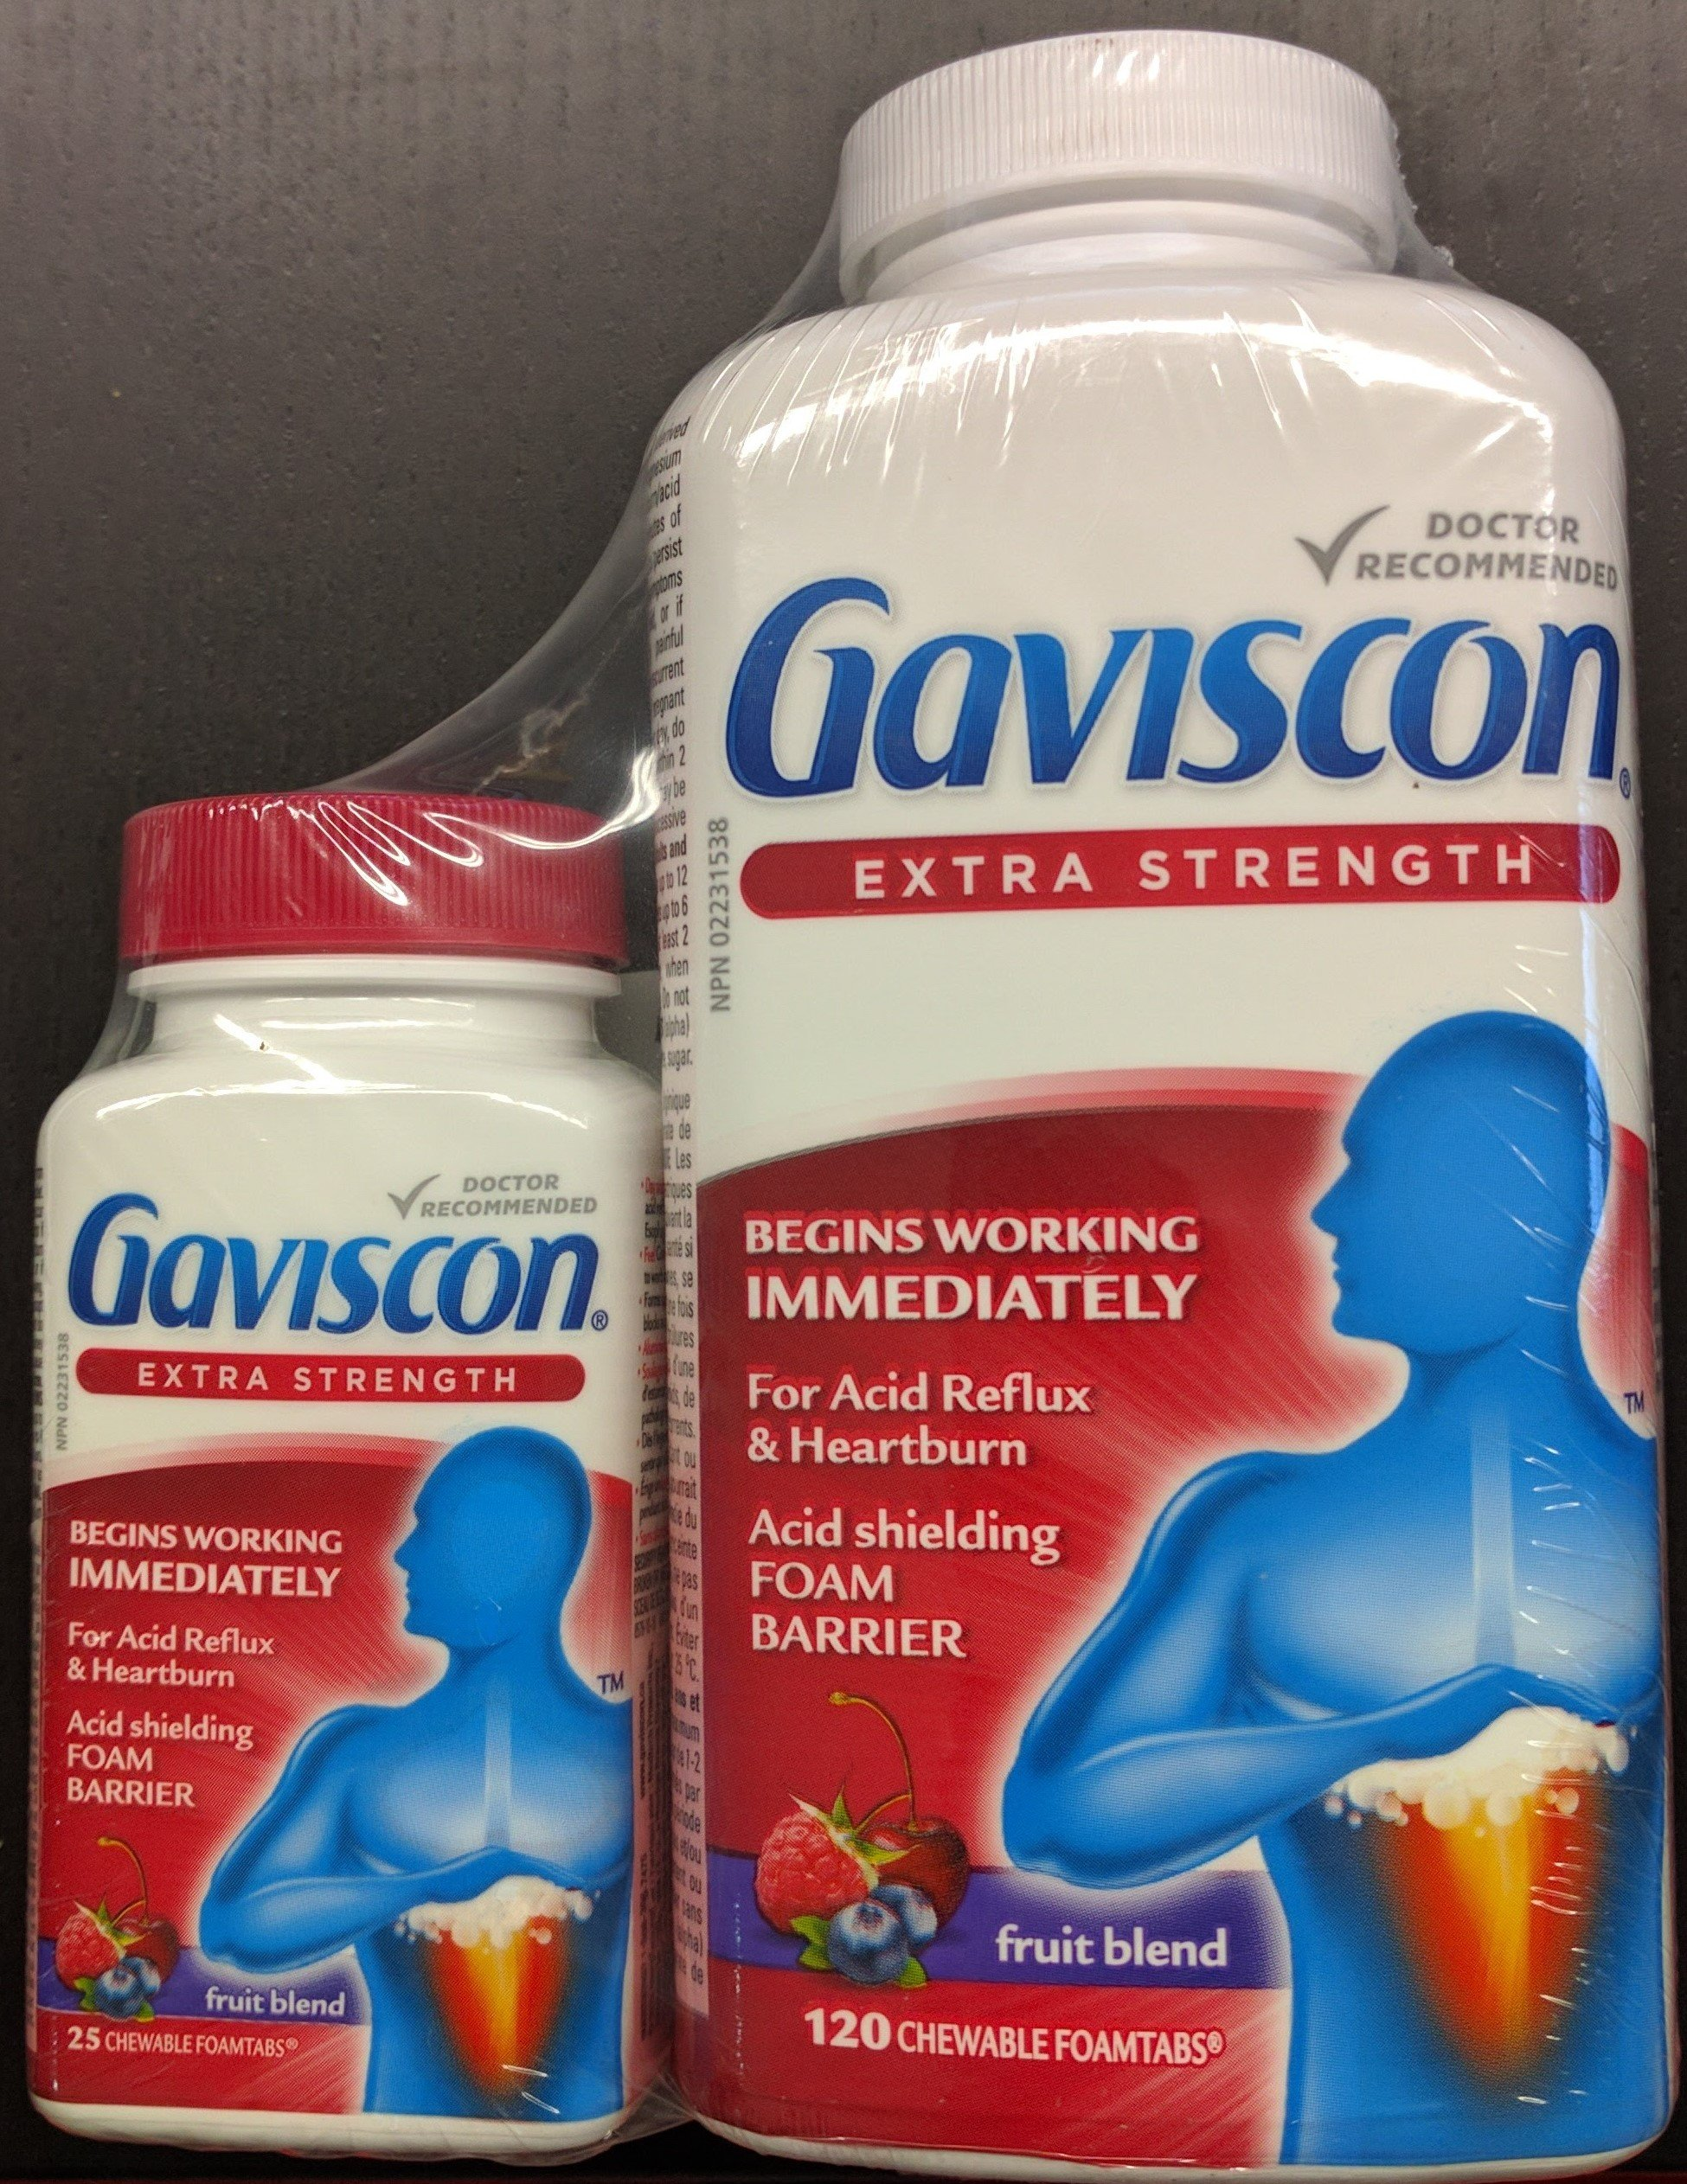 Gaviscon Extra Strength 120 chewable tabs + BONUS 25 Tablet Travel Pack